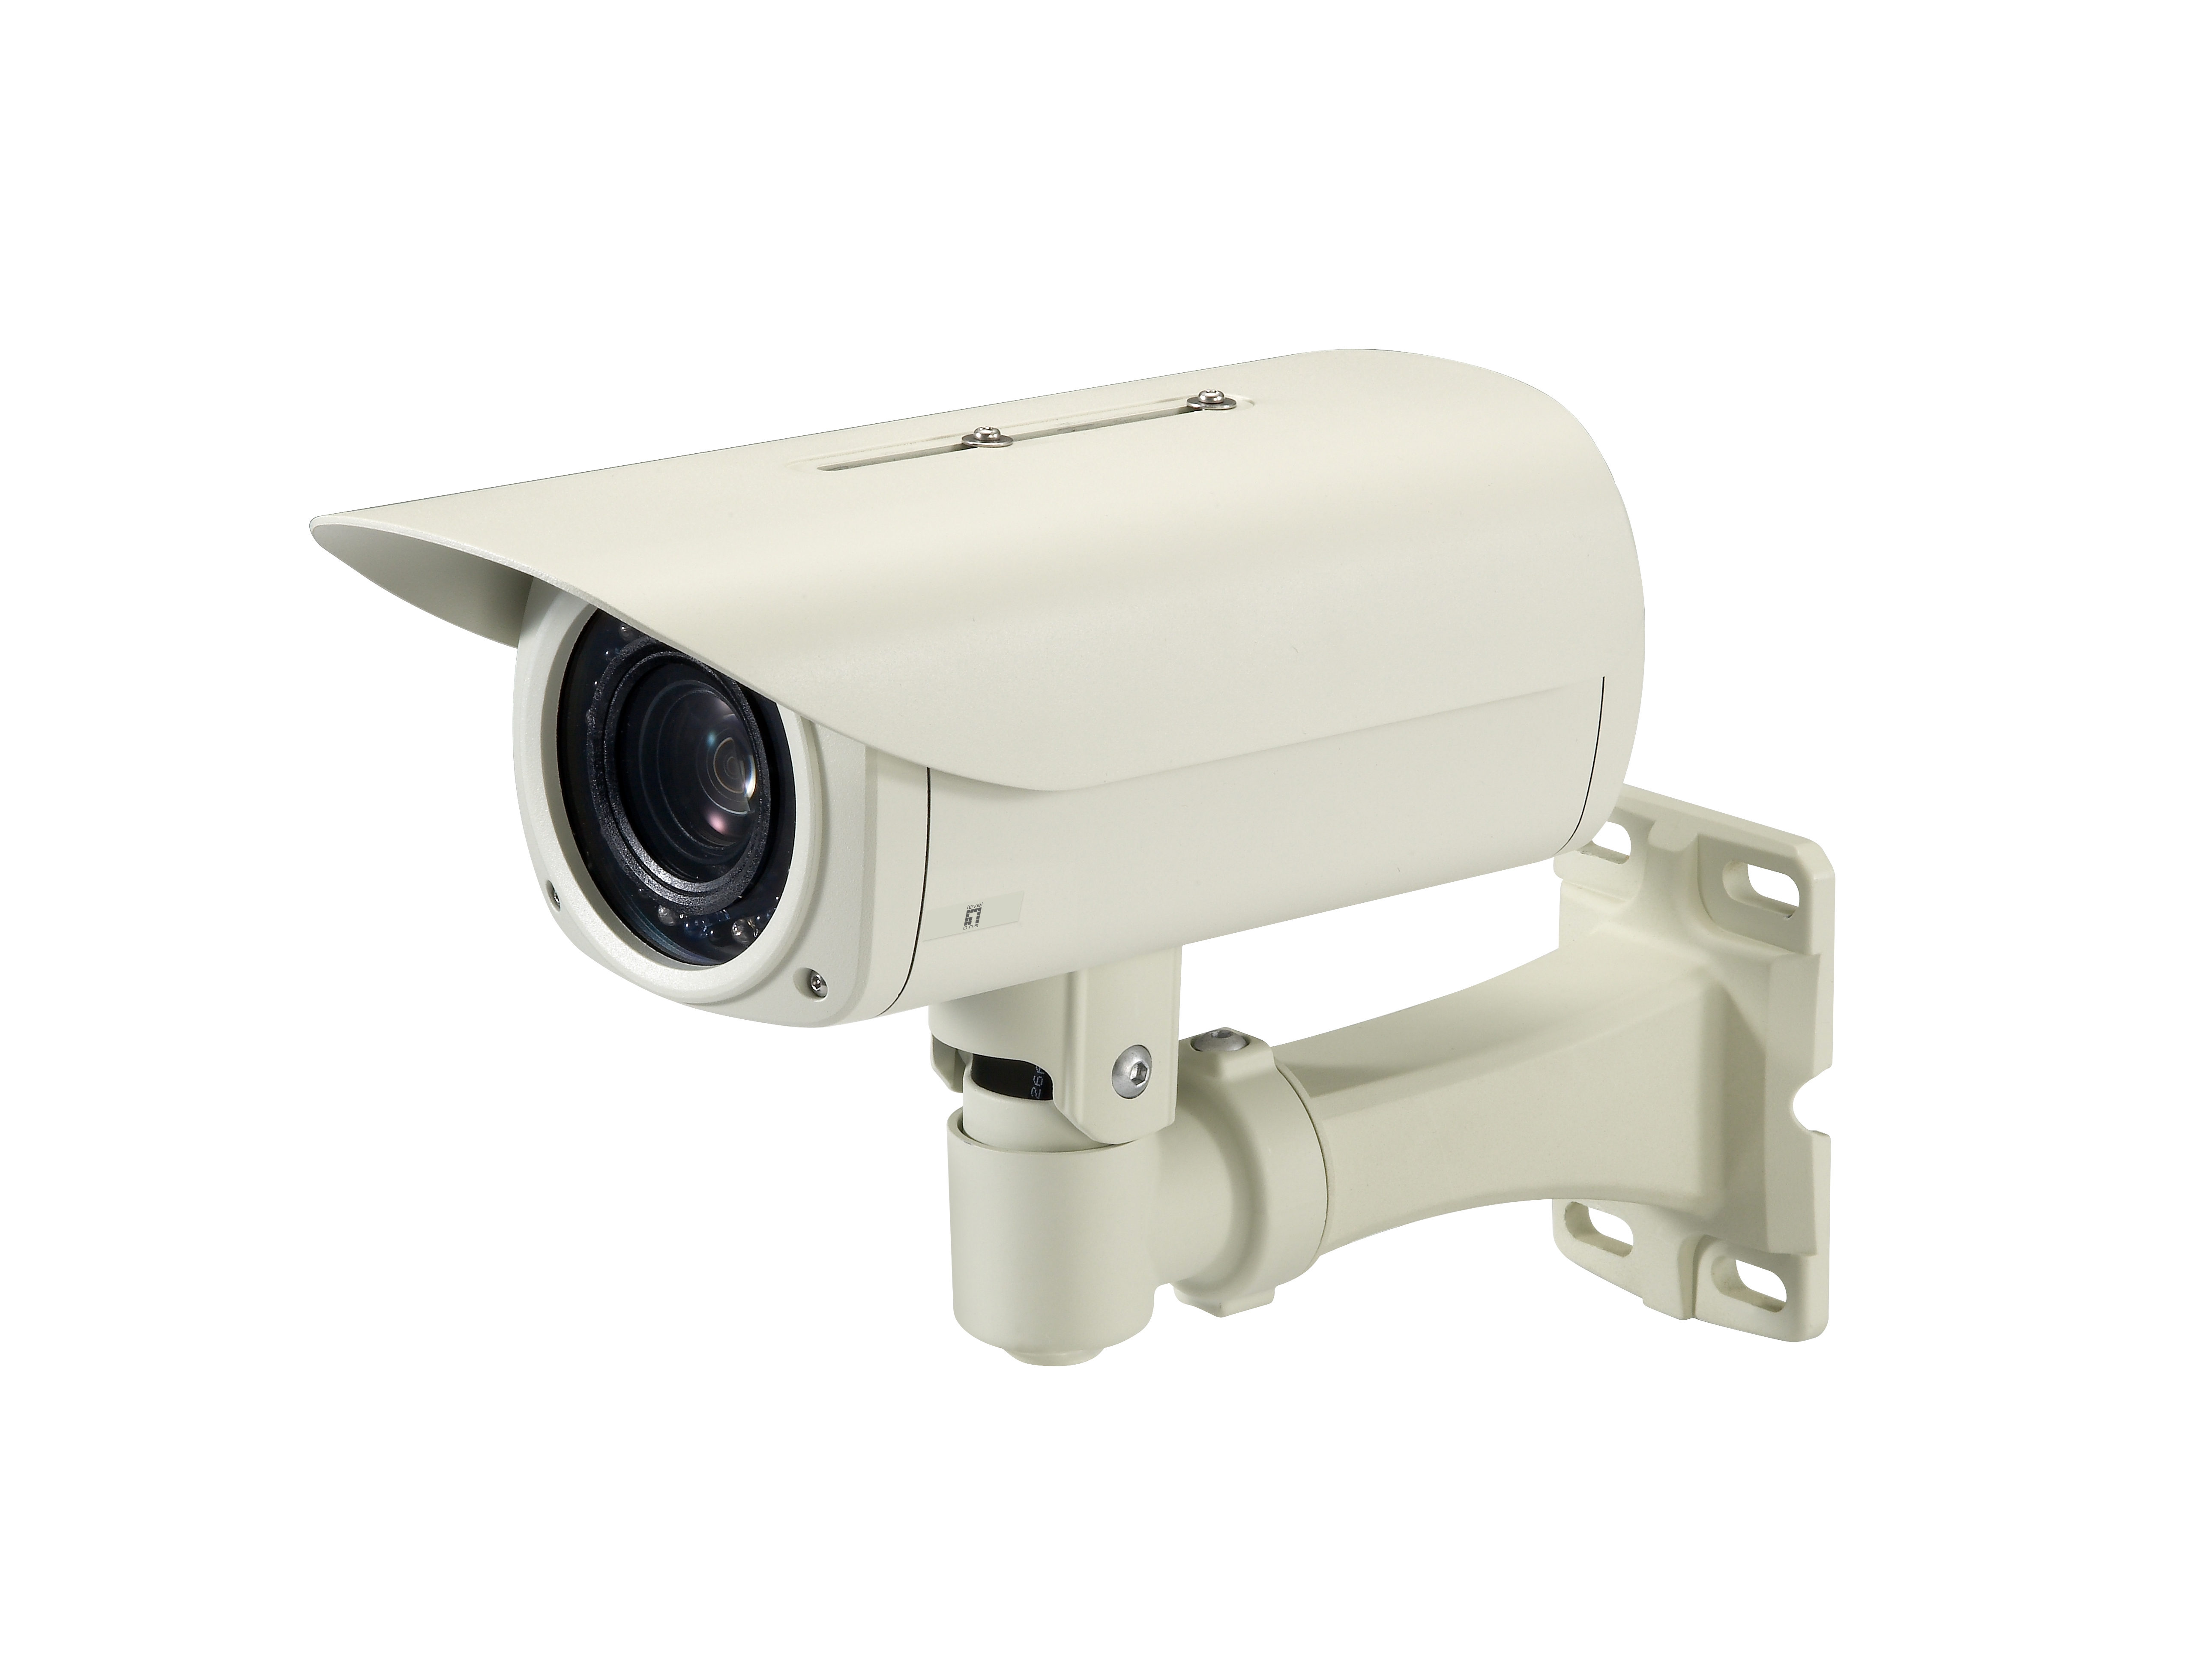 LevelOne Zoom Network Camera - 5-Megapixel - Outdoor - PoE 802.3af - Day & Night - IR LEDs - 12x - WDR